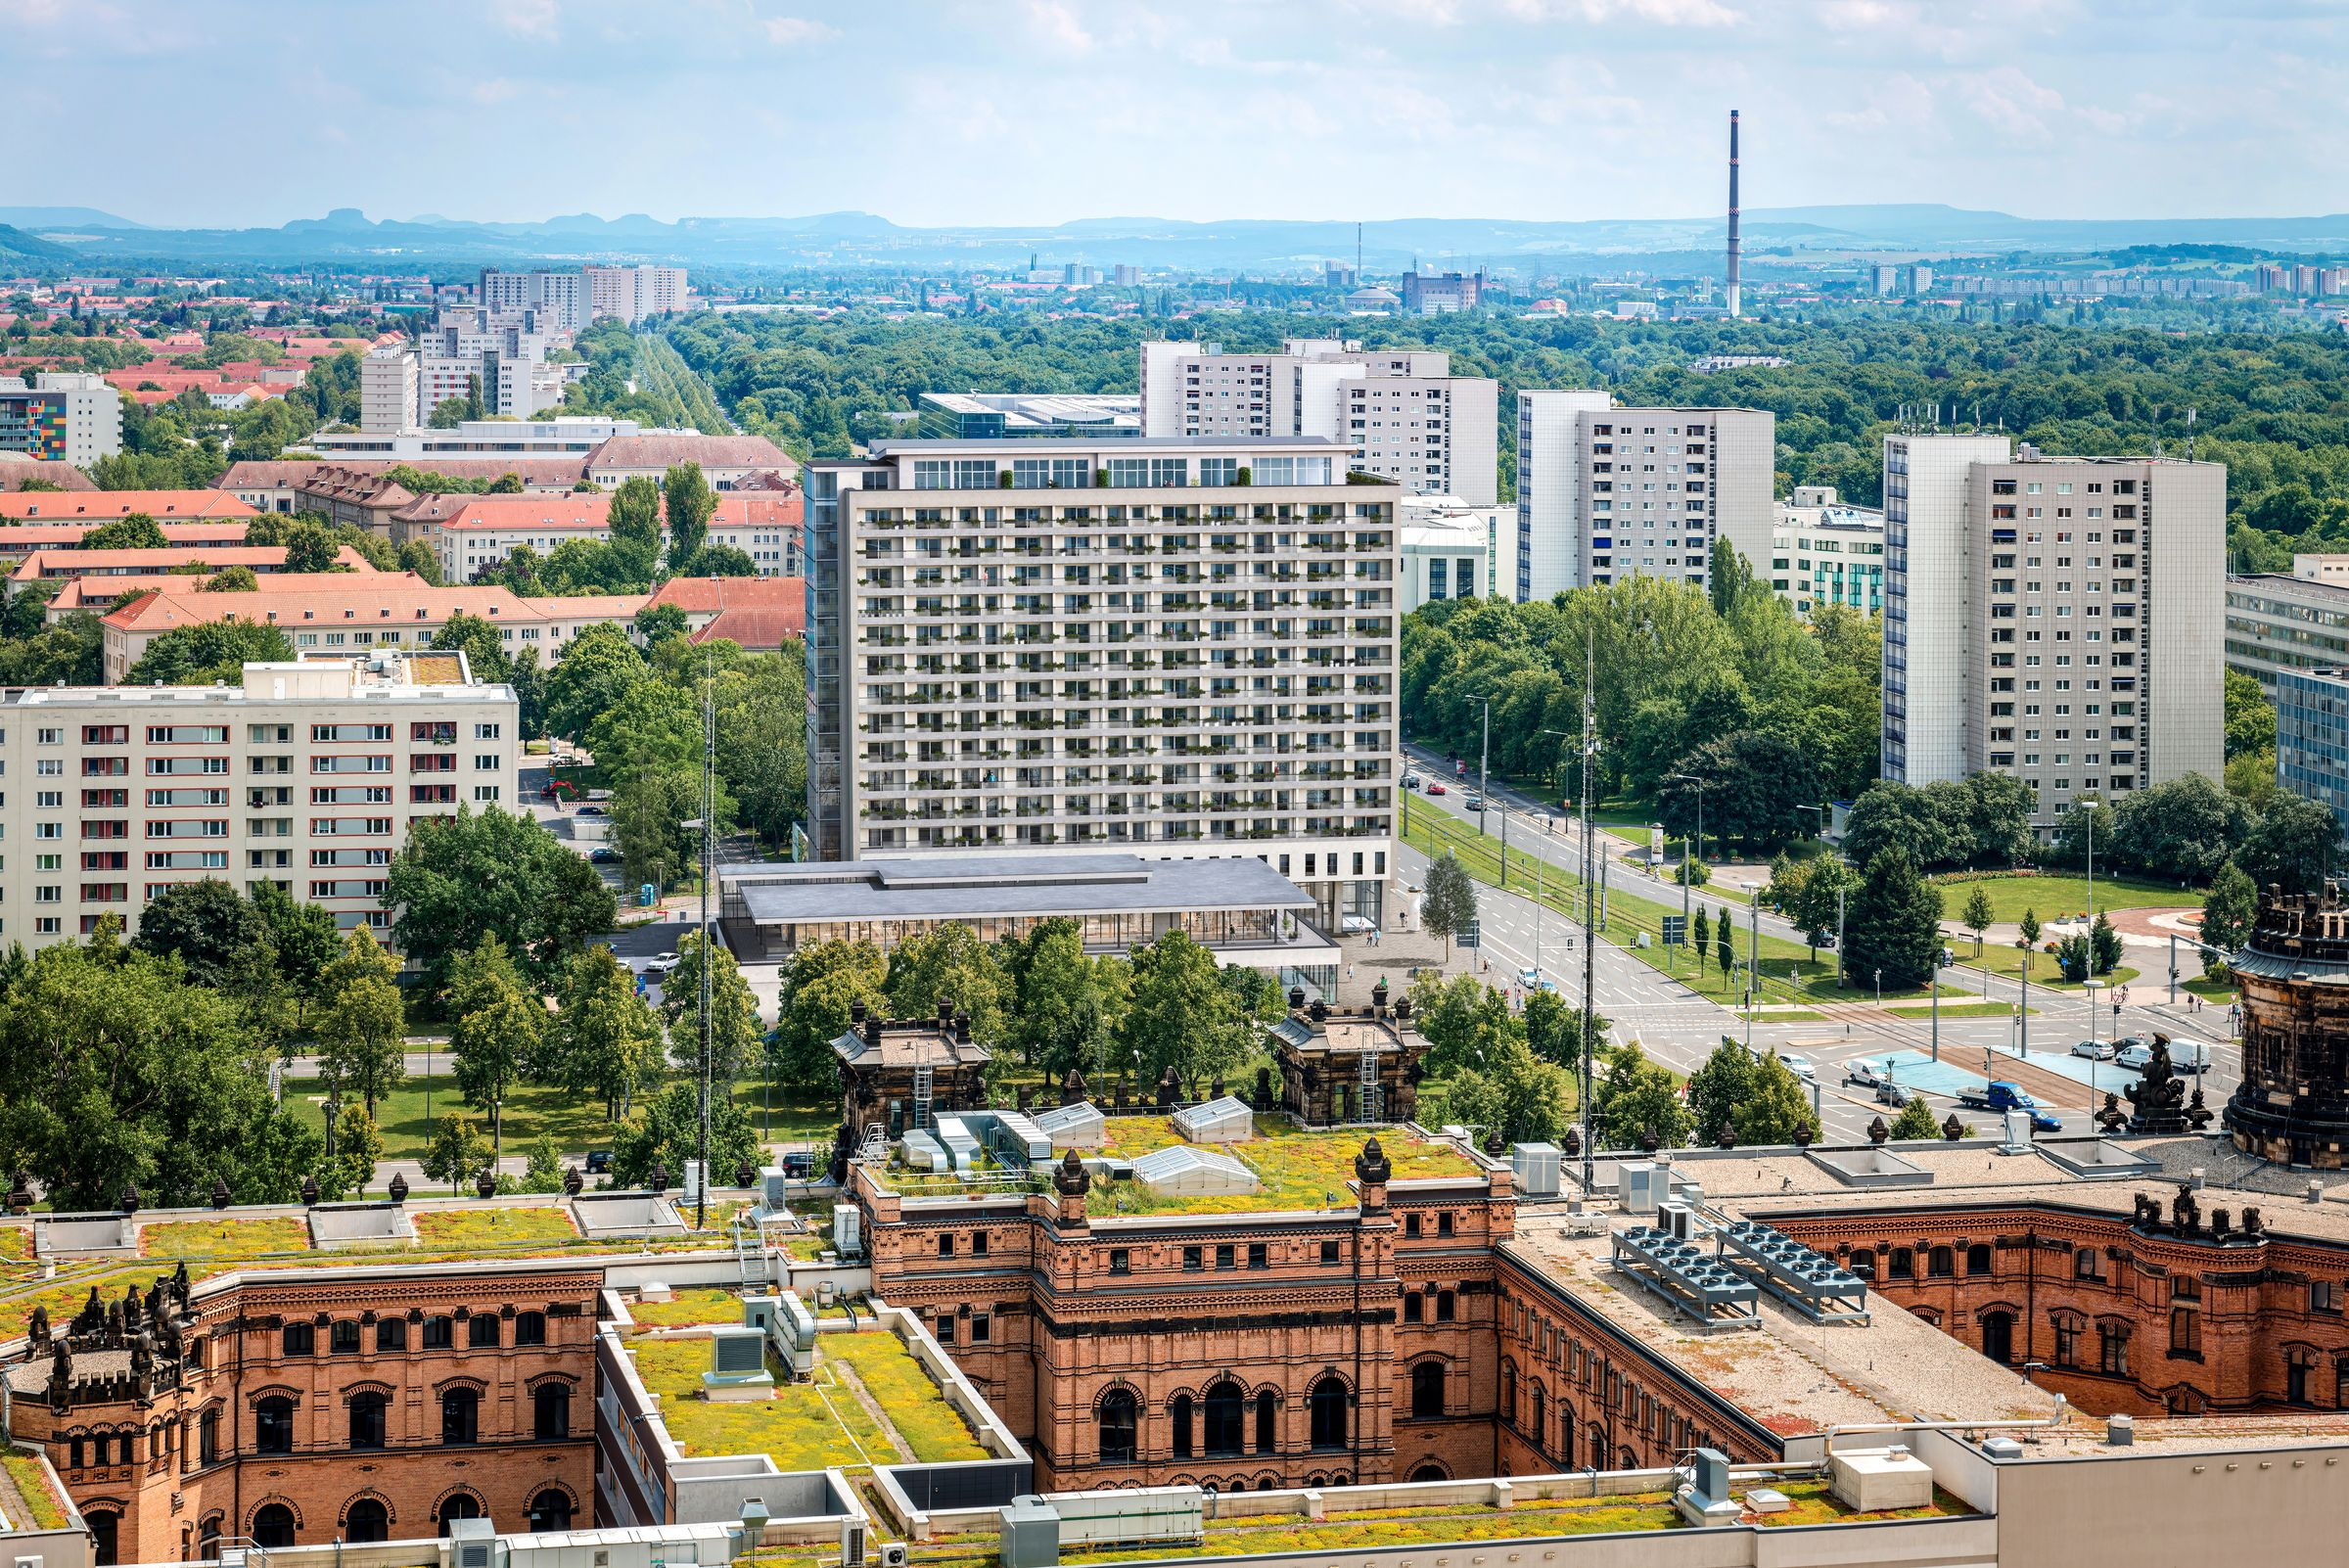 Aerial view of Dresden, looking East, with the rooftops of the building of the Police Department in the foreground and typical soviet apartment blocks in the background.